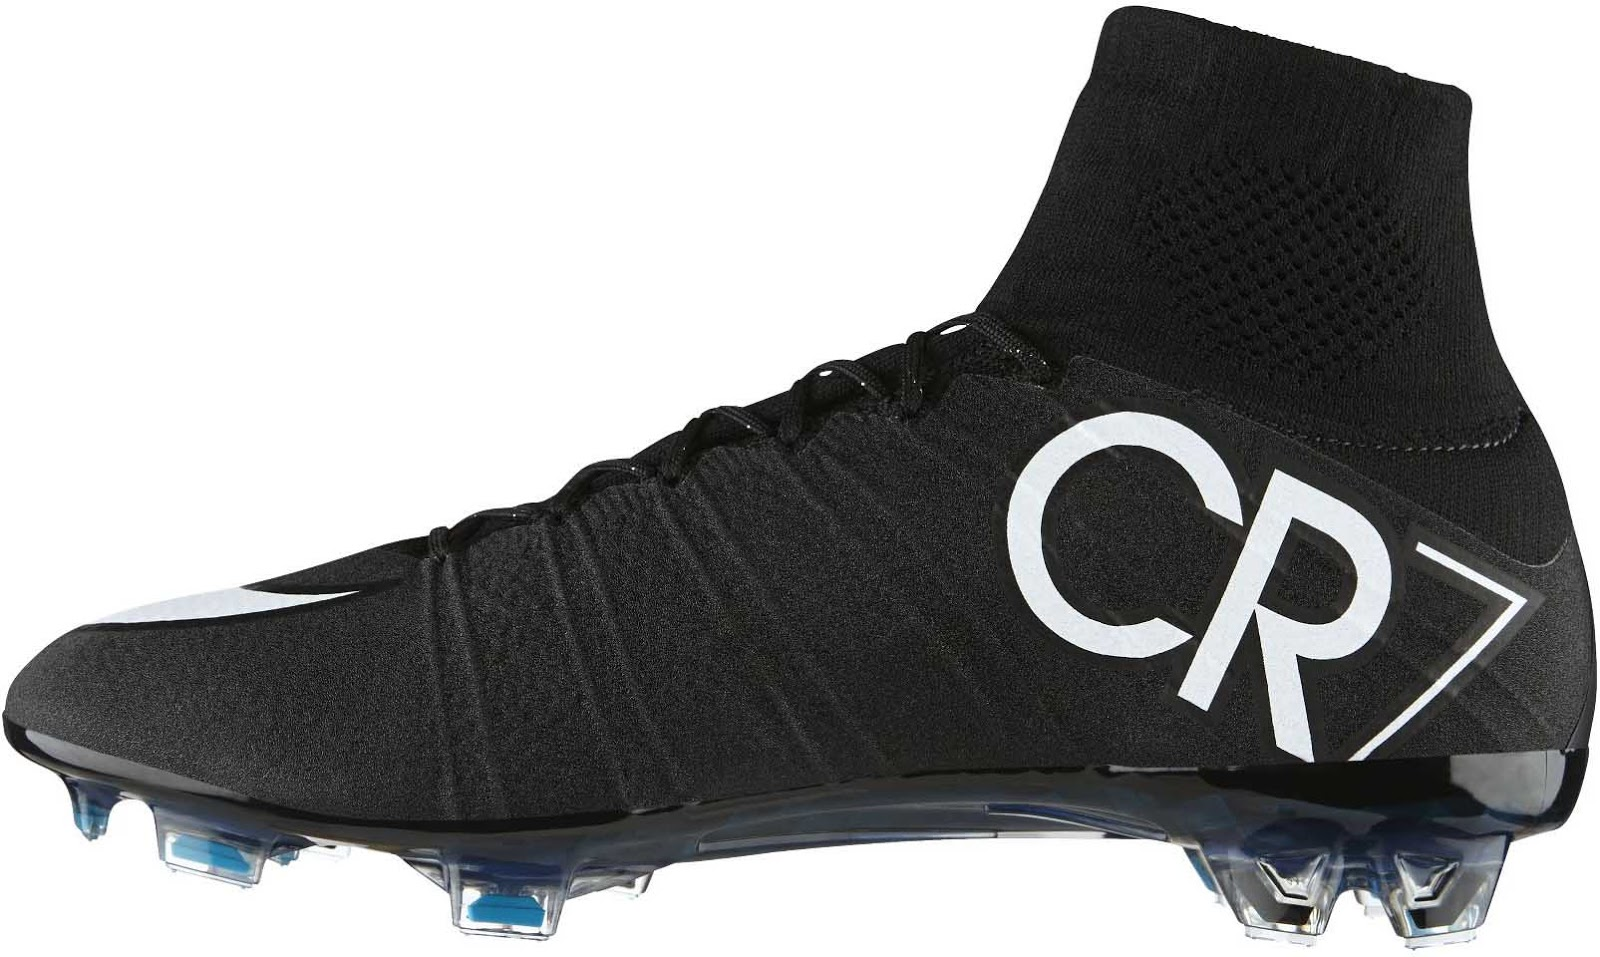 Cr7 2015 cleats